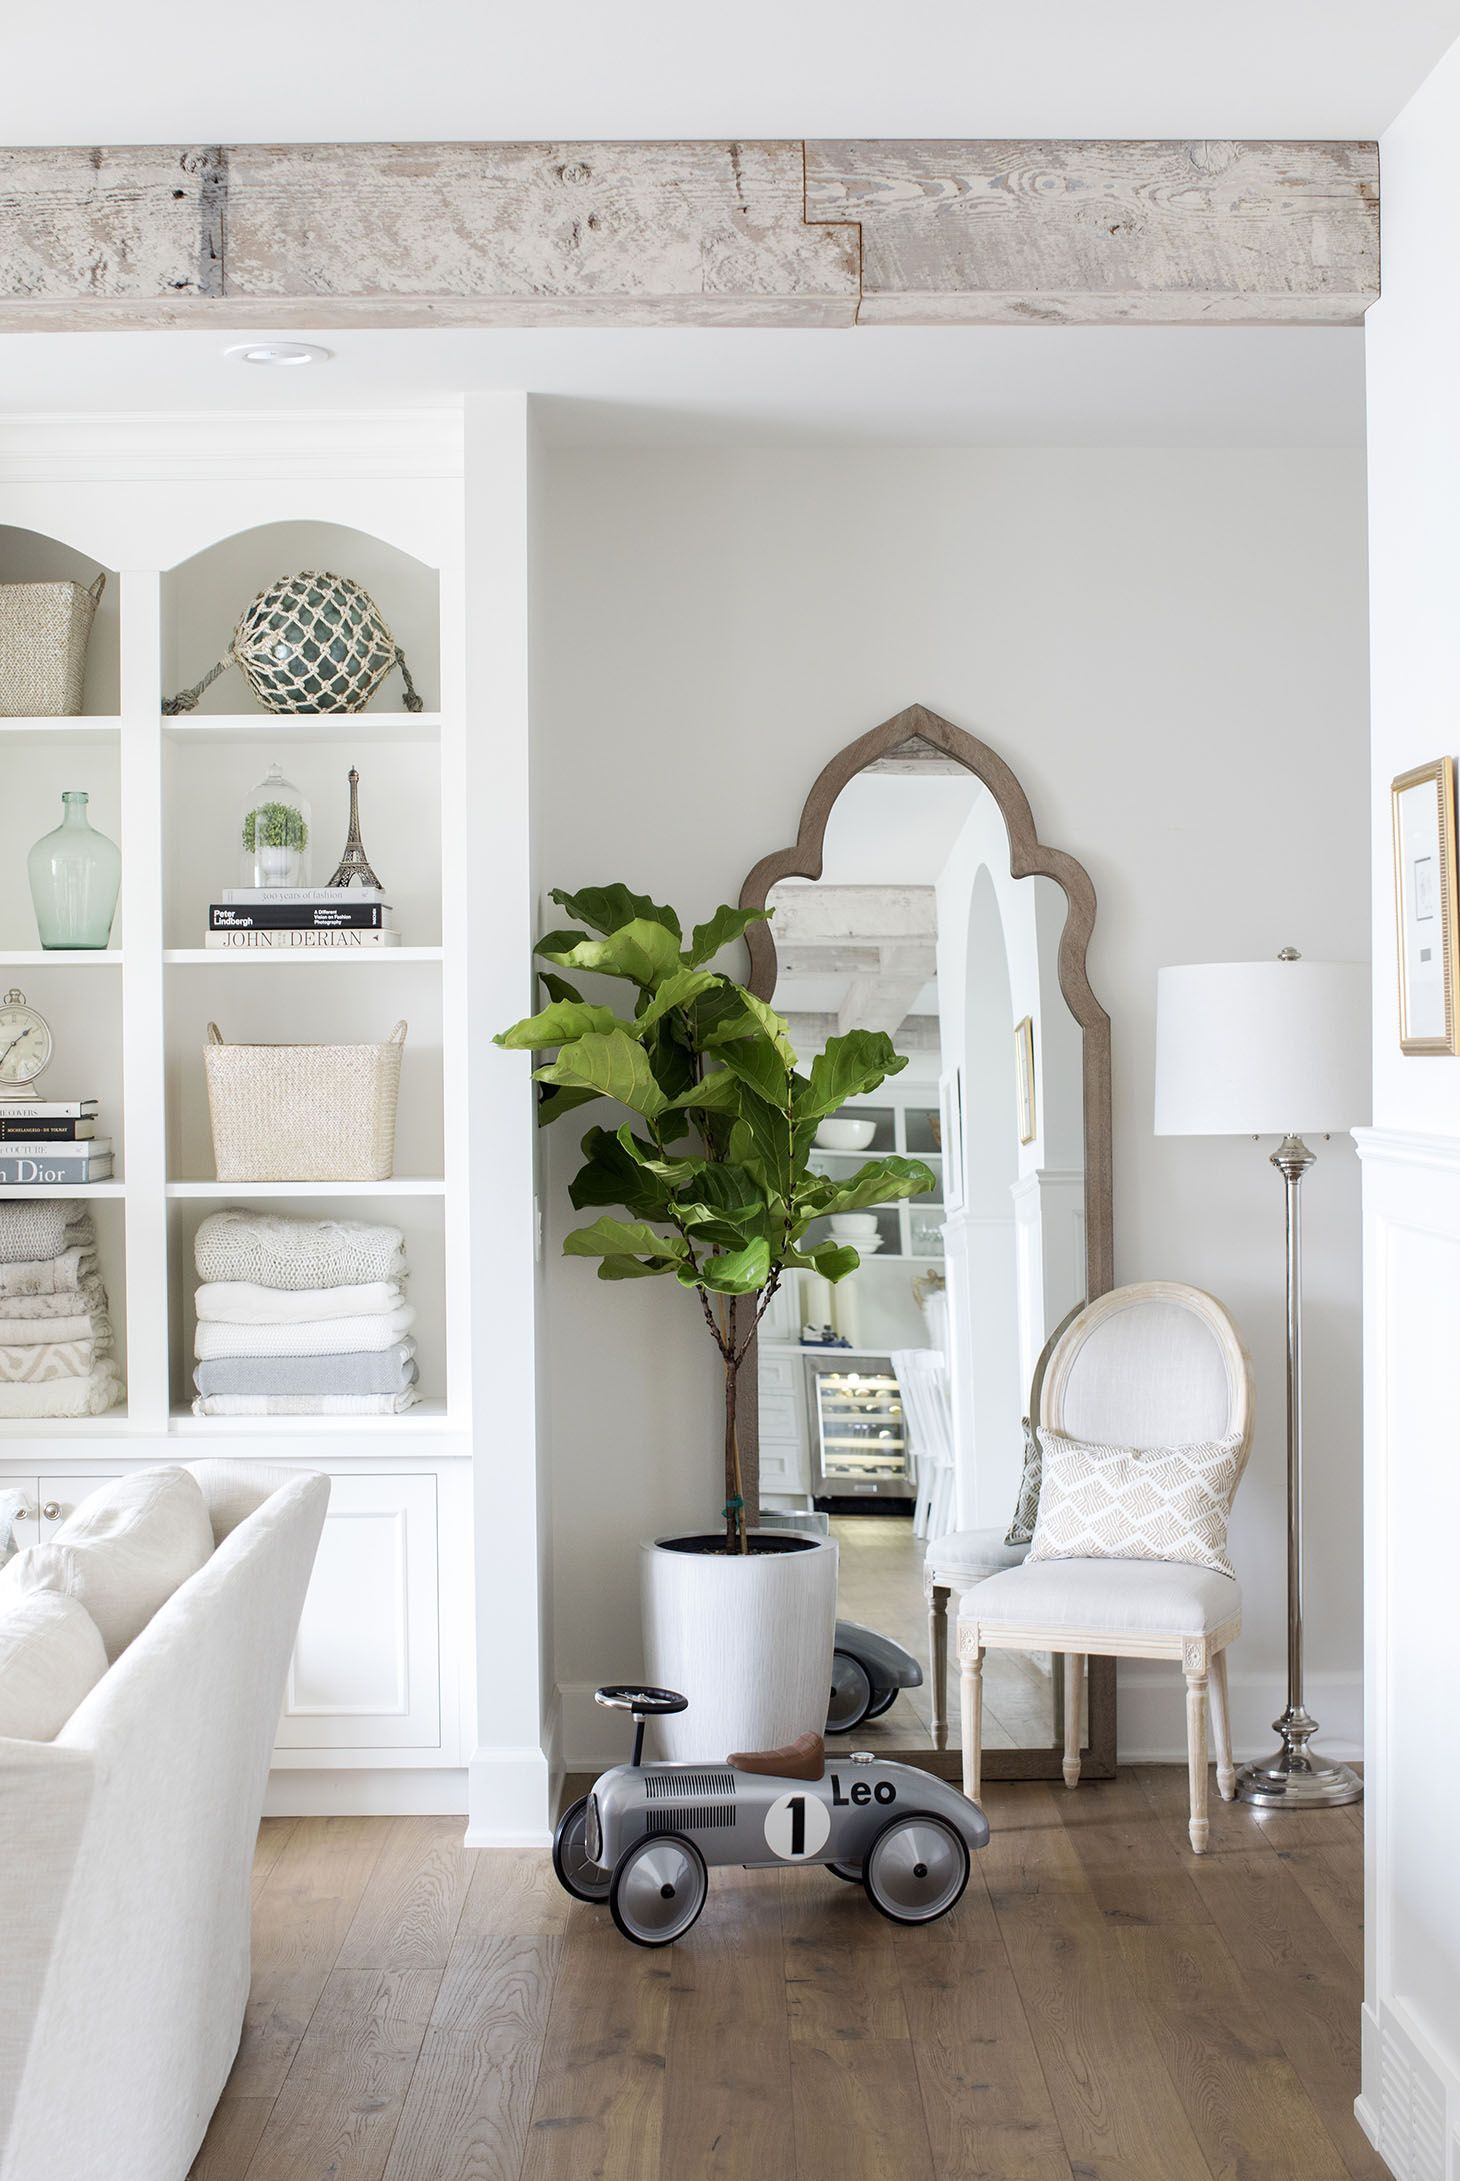 Jillian Harris - Home Tour Series Living Room #Homerenovation #Interiordesign